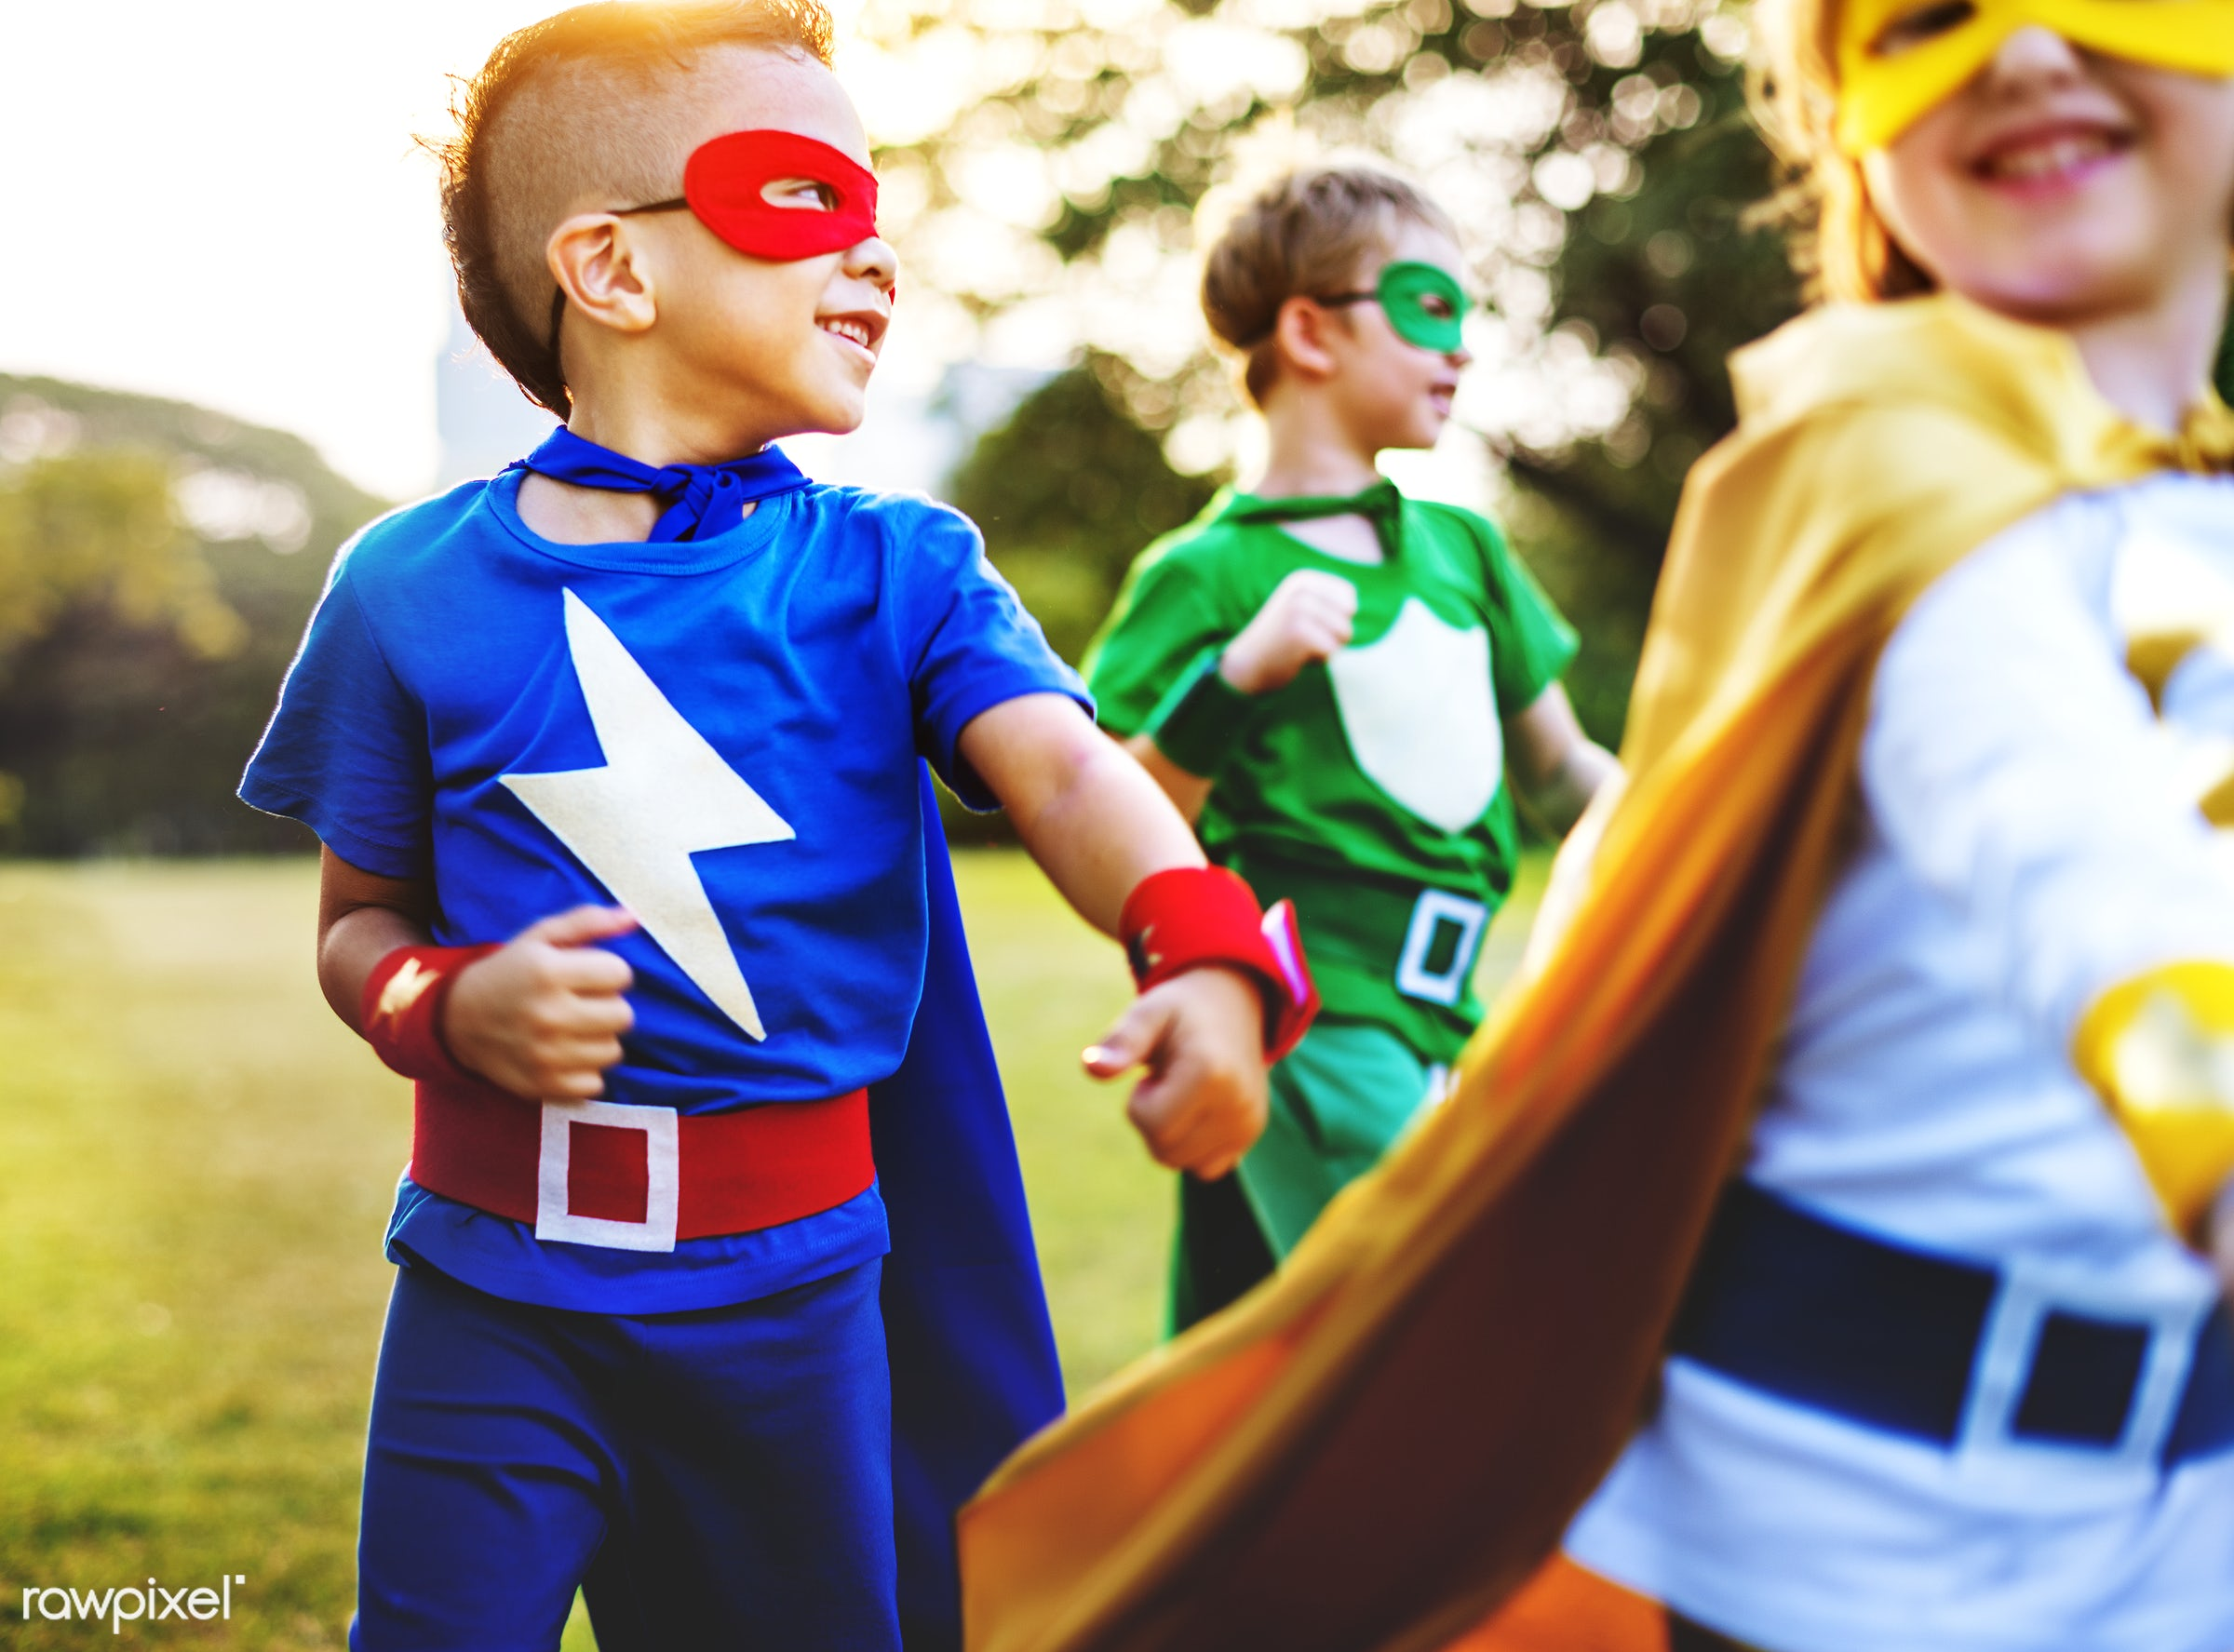 Superhero kids with superpowers - costume, hero, superhero, adorable, african descent, asian ethnicity, aspiration, boys,...